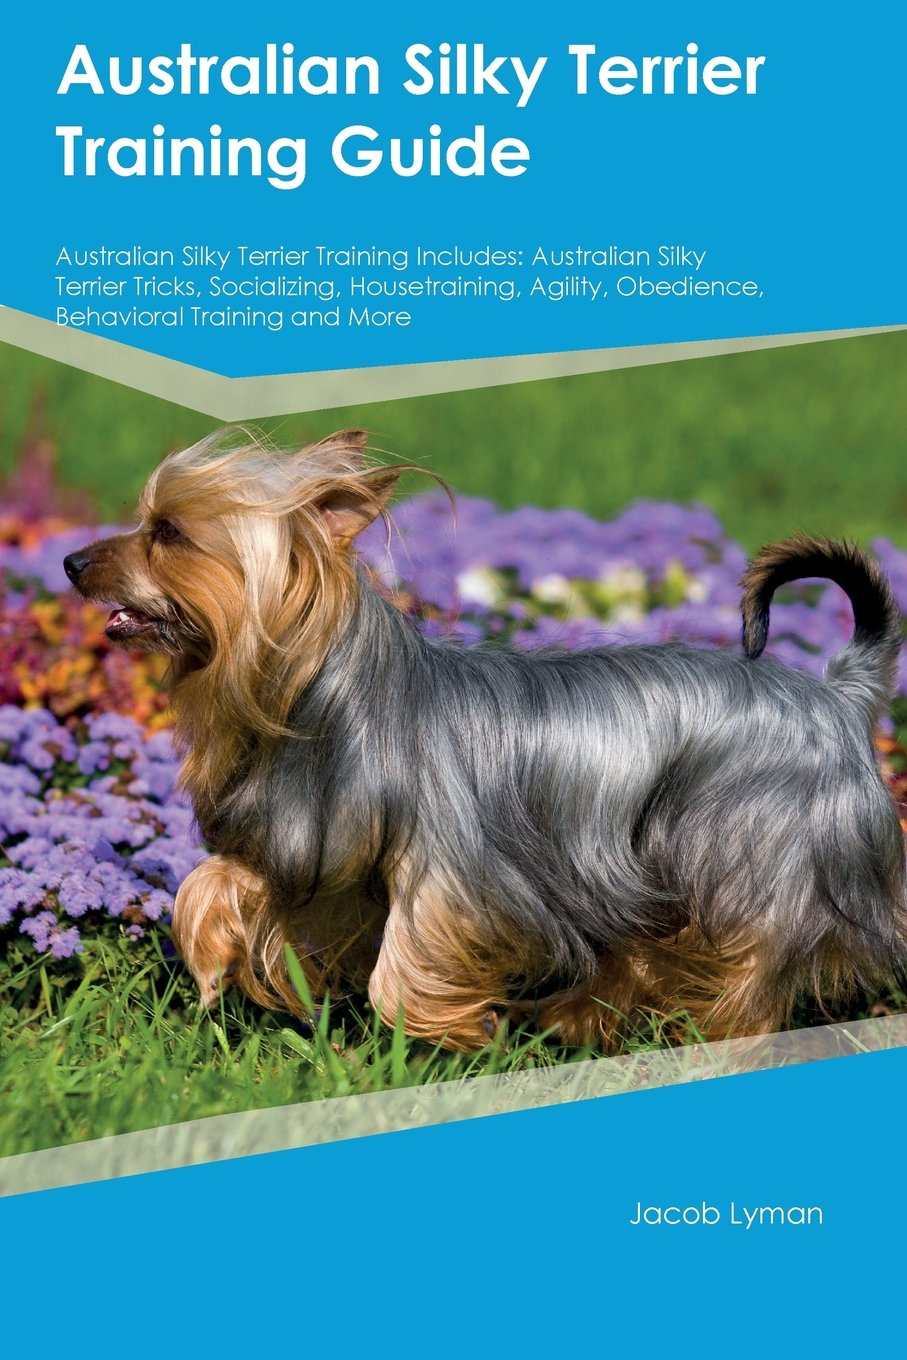 Download Australian Silky Terrier Training Guide Australian Silky Terrier Training Includes: Australian Silky Terrier Tricks, Socializing, Housetraining, Agility, Obedience, Behavioral Training and More pdf epub